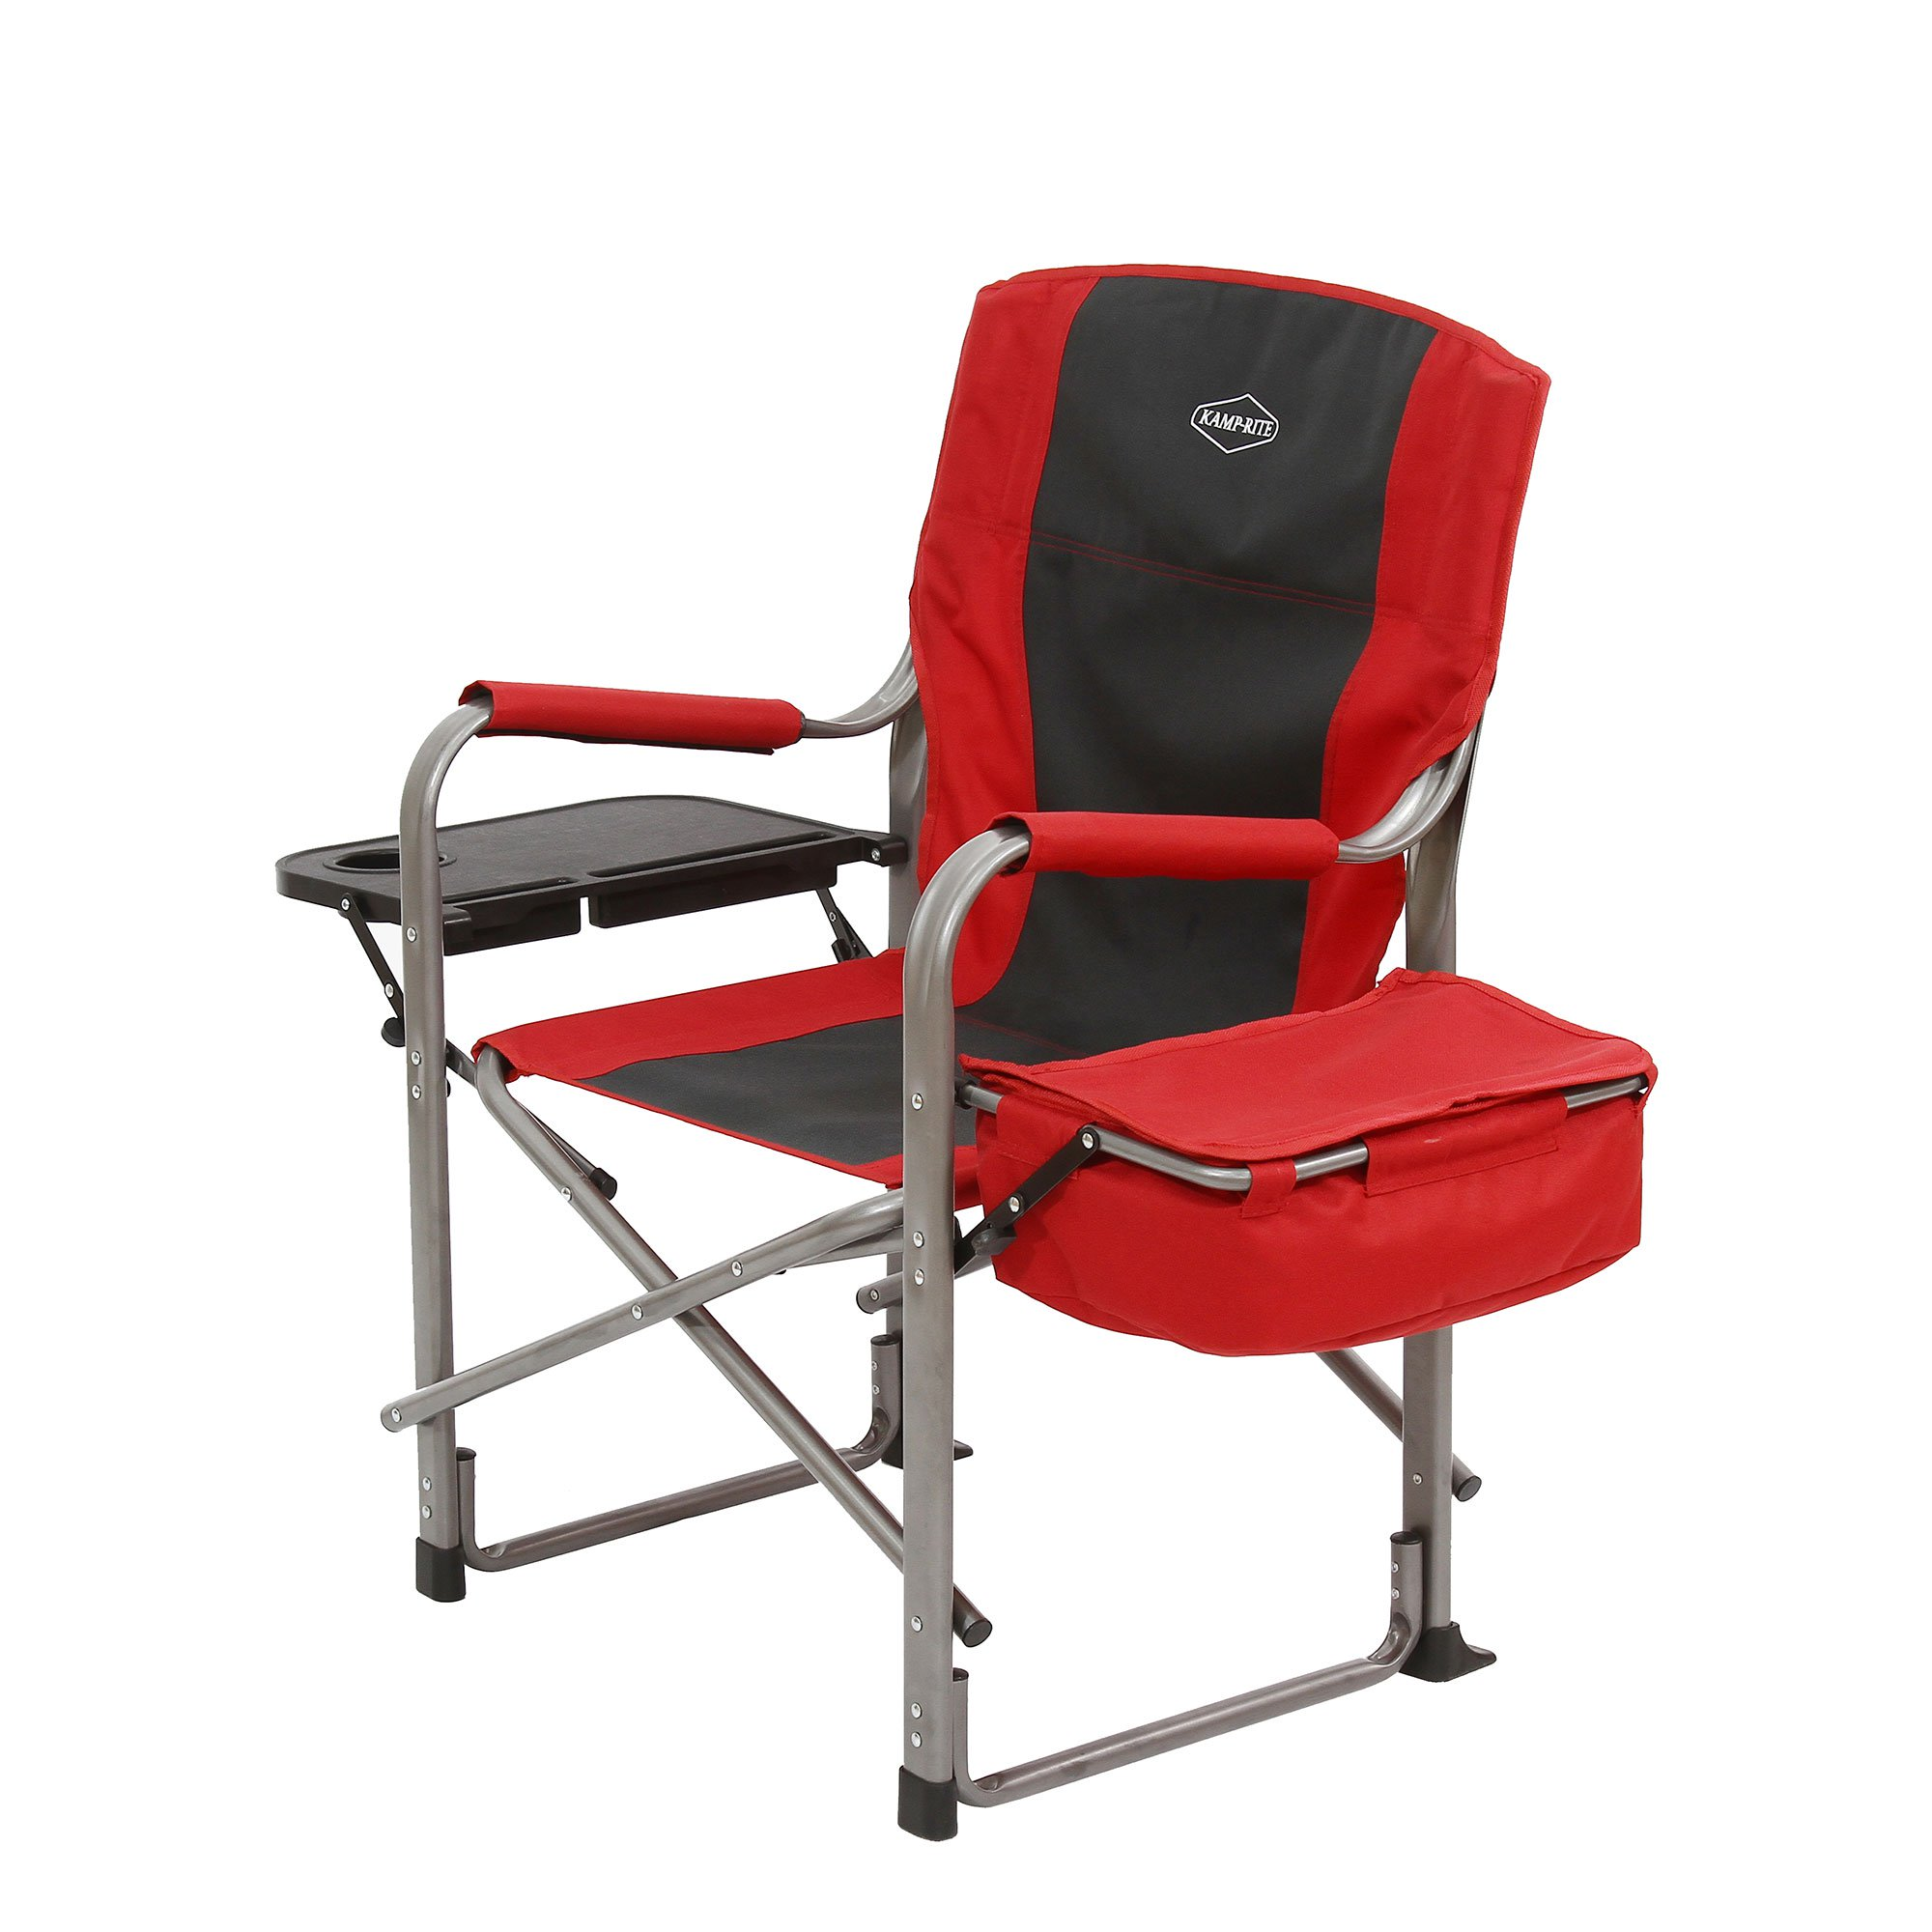 Folding Directors Chair With Side Table Kamp Rite Outdoor Camp Folding Director S Chair With Side Table Cooler Red